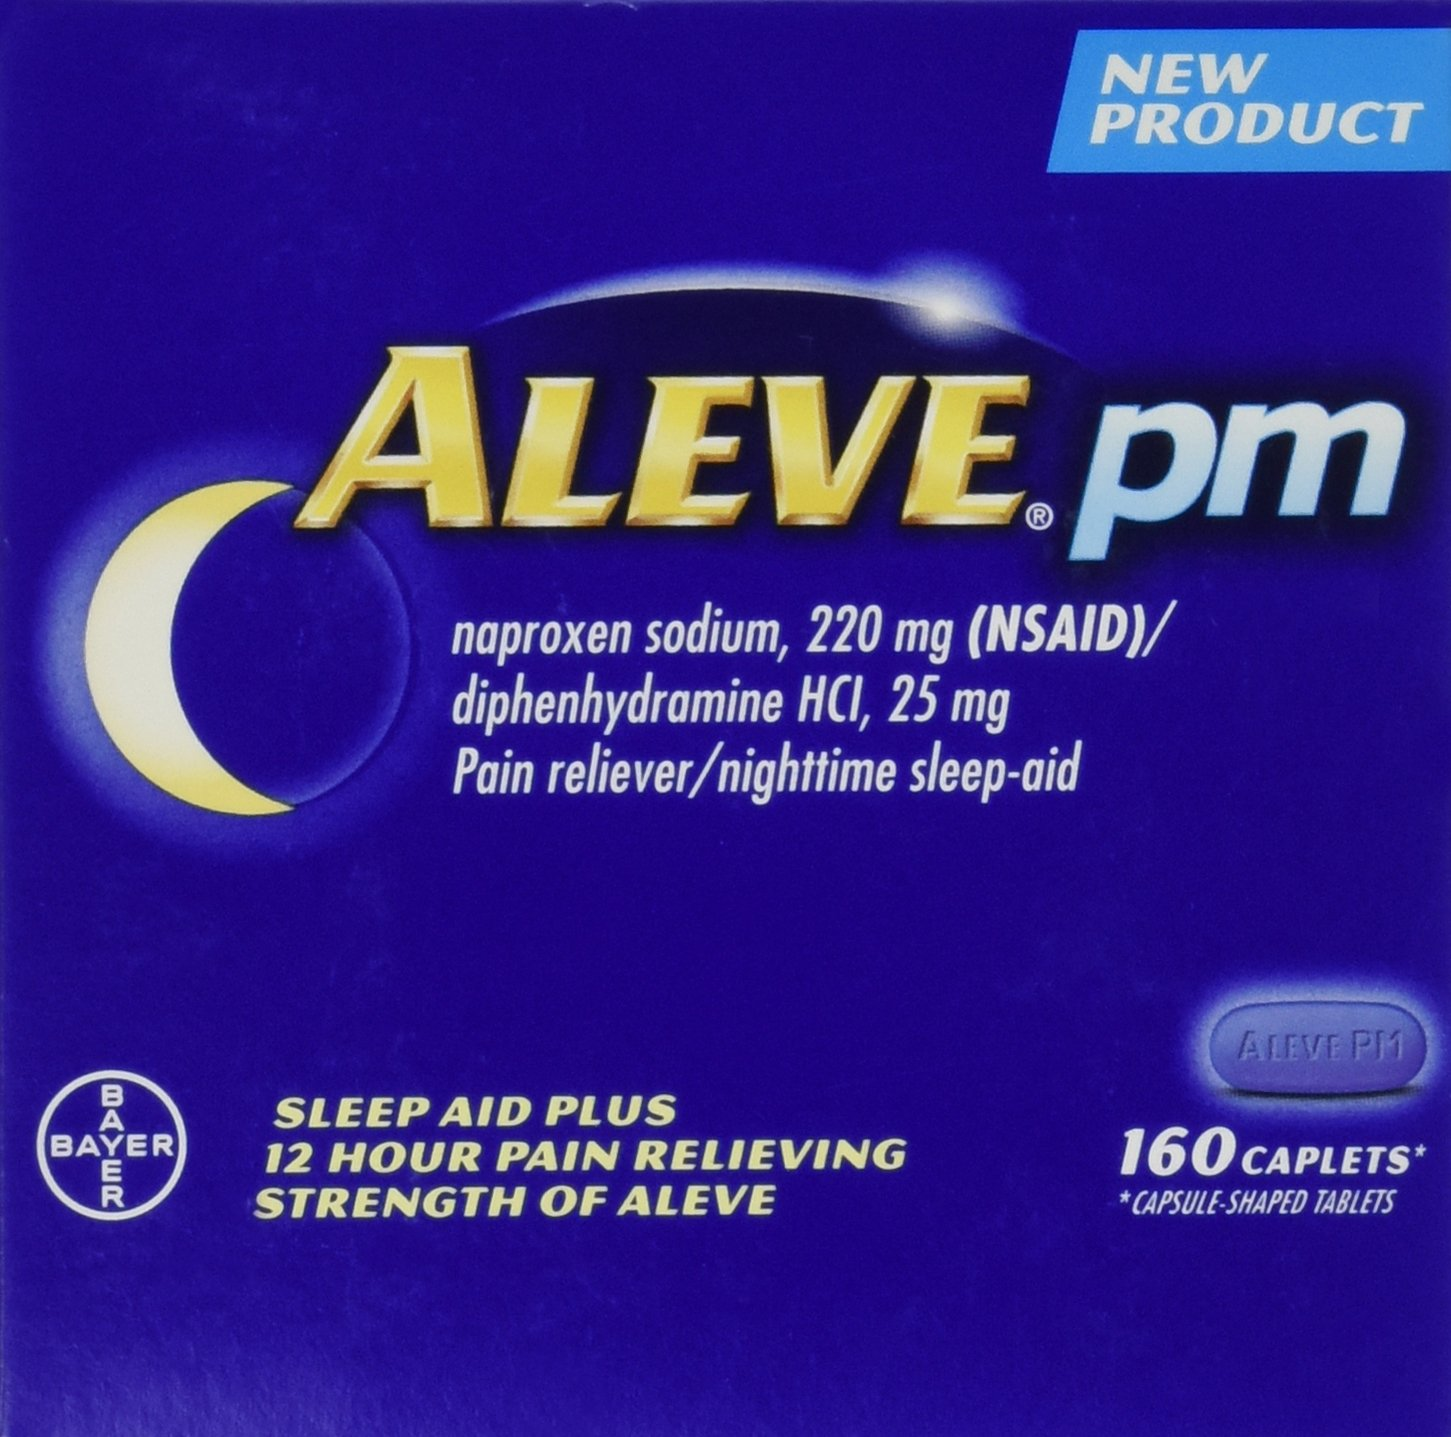 Aleve PM 160 Caplets Total Naproxen Sodium 220mg NSAID / Diphenhydramine 25 mg (Nighttime Sleep-Aid) Total 2 Bottles Each Bottle Contains 80 Pills by Bayer